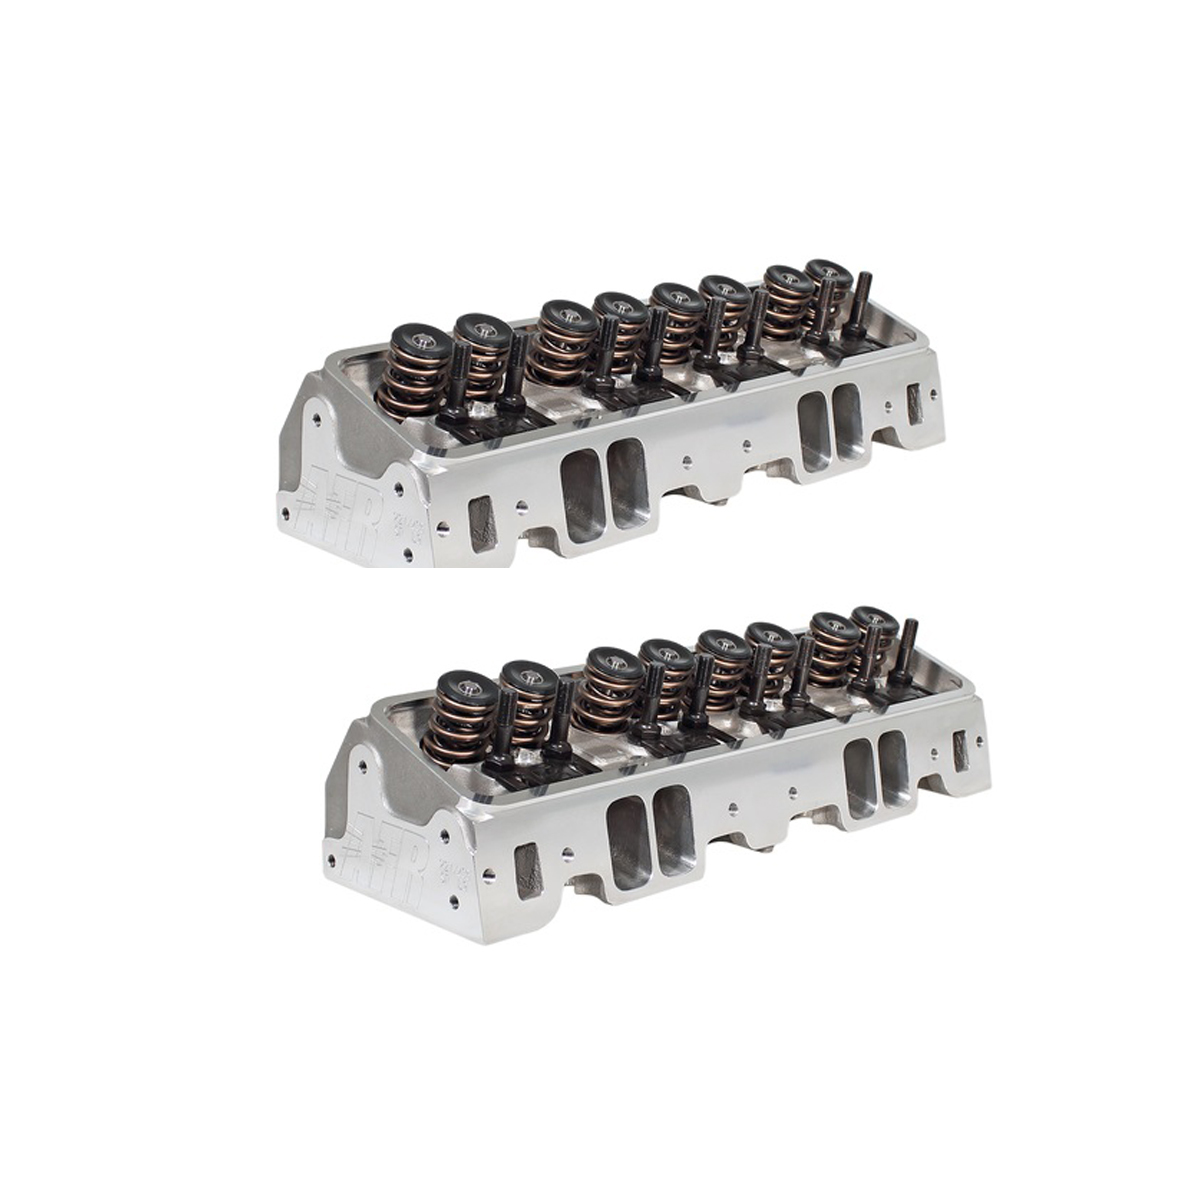 Shop For Cylinder Heads And Components :: Racecar Engineering